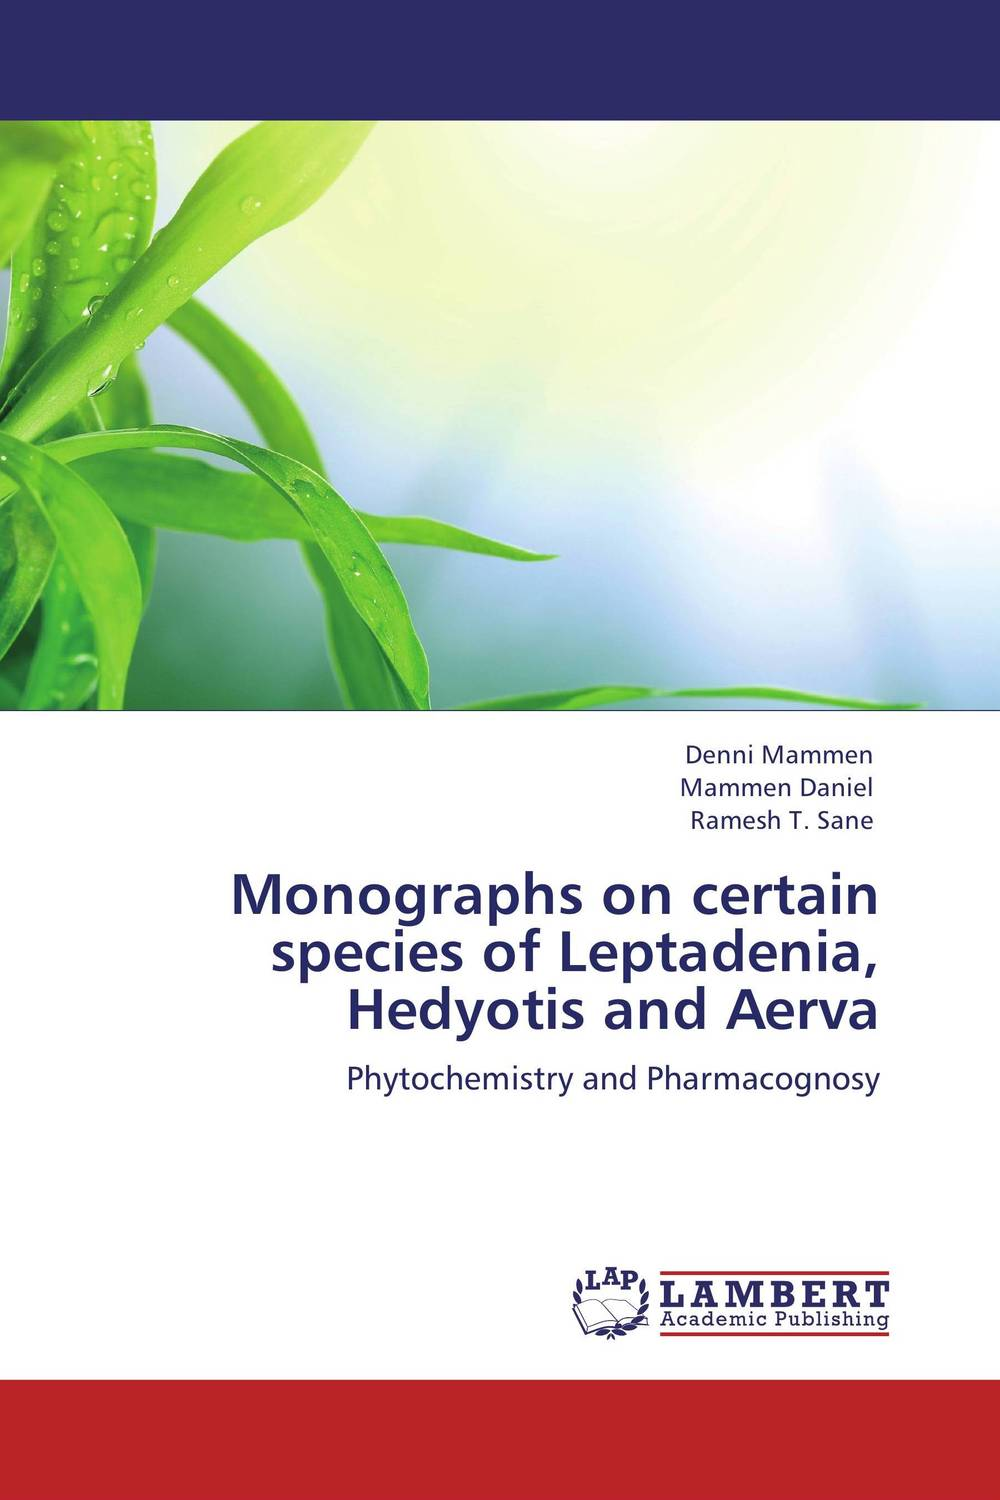 Monographs on certain species of Leptadenia, Hedyotis and Aerva george varghese diana john and solomon habtemariam medicinal plants for kidney stone a monograph